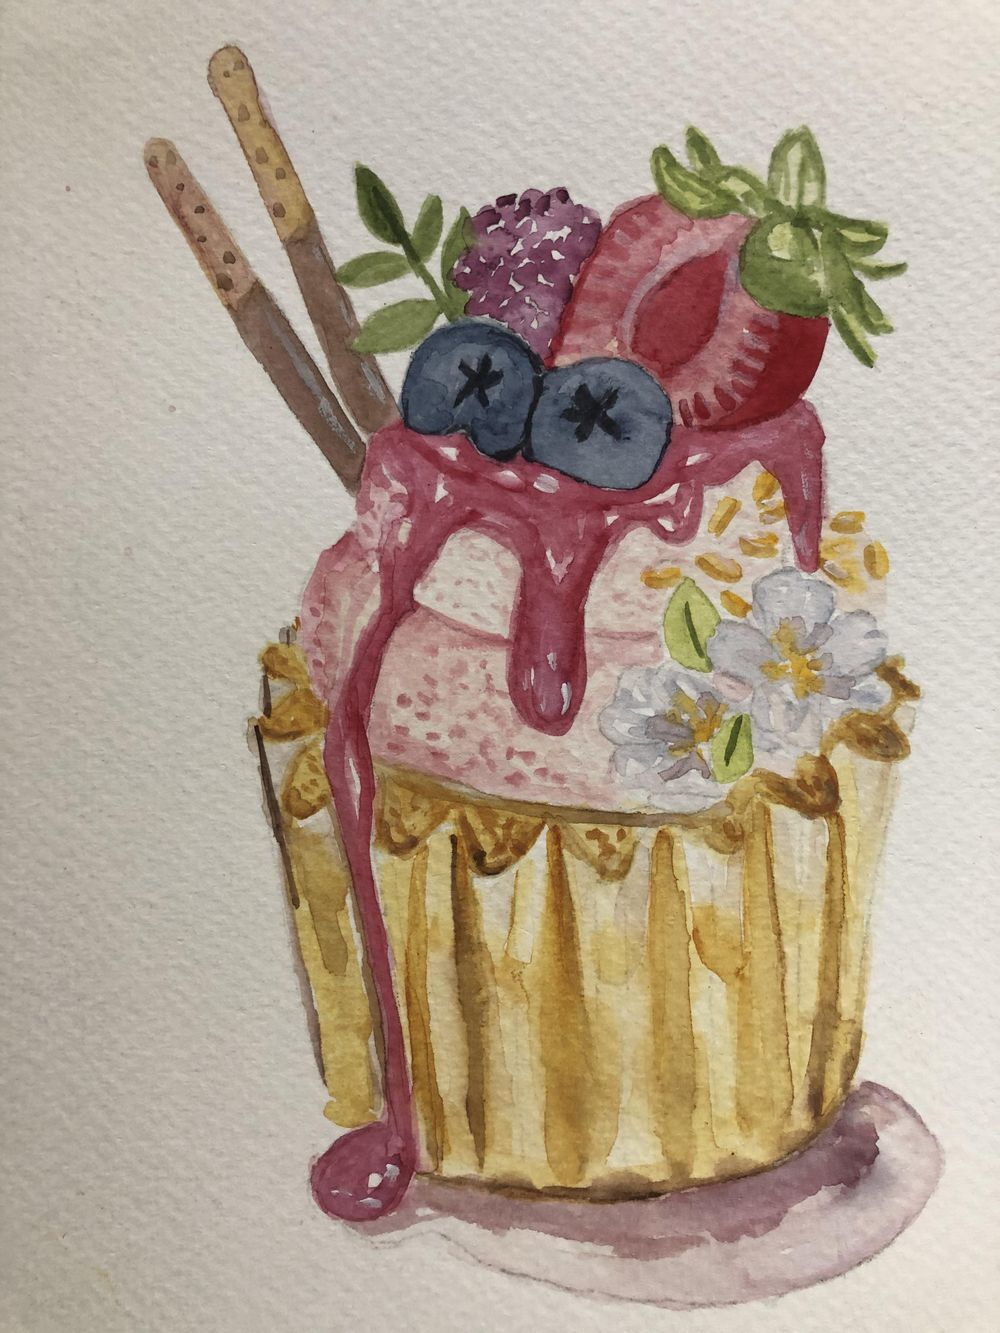 Strawberry cupcake - image 1 - student project